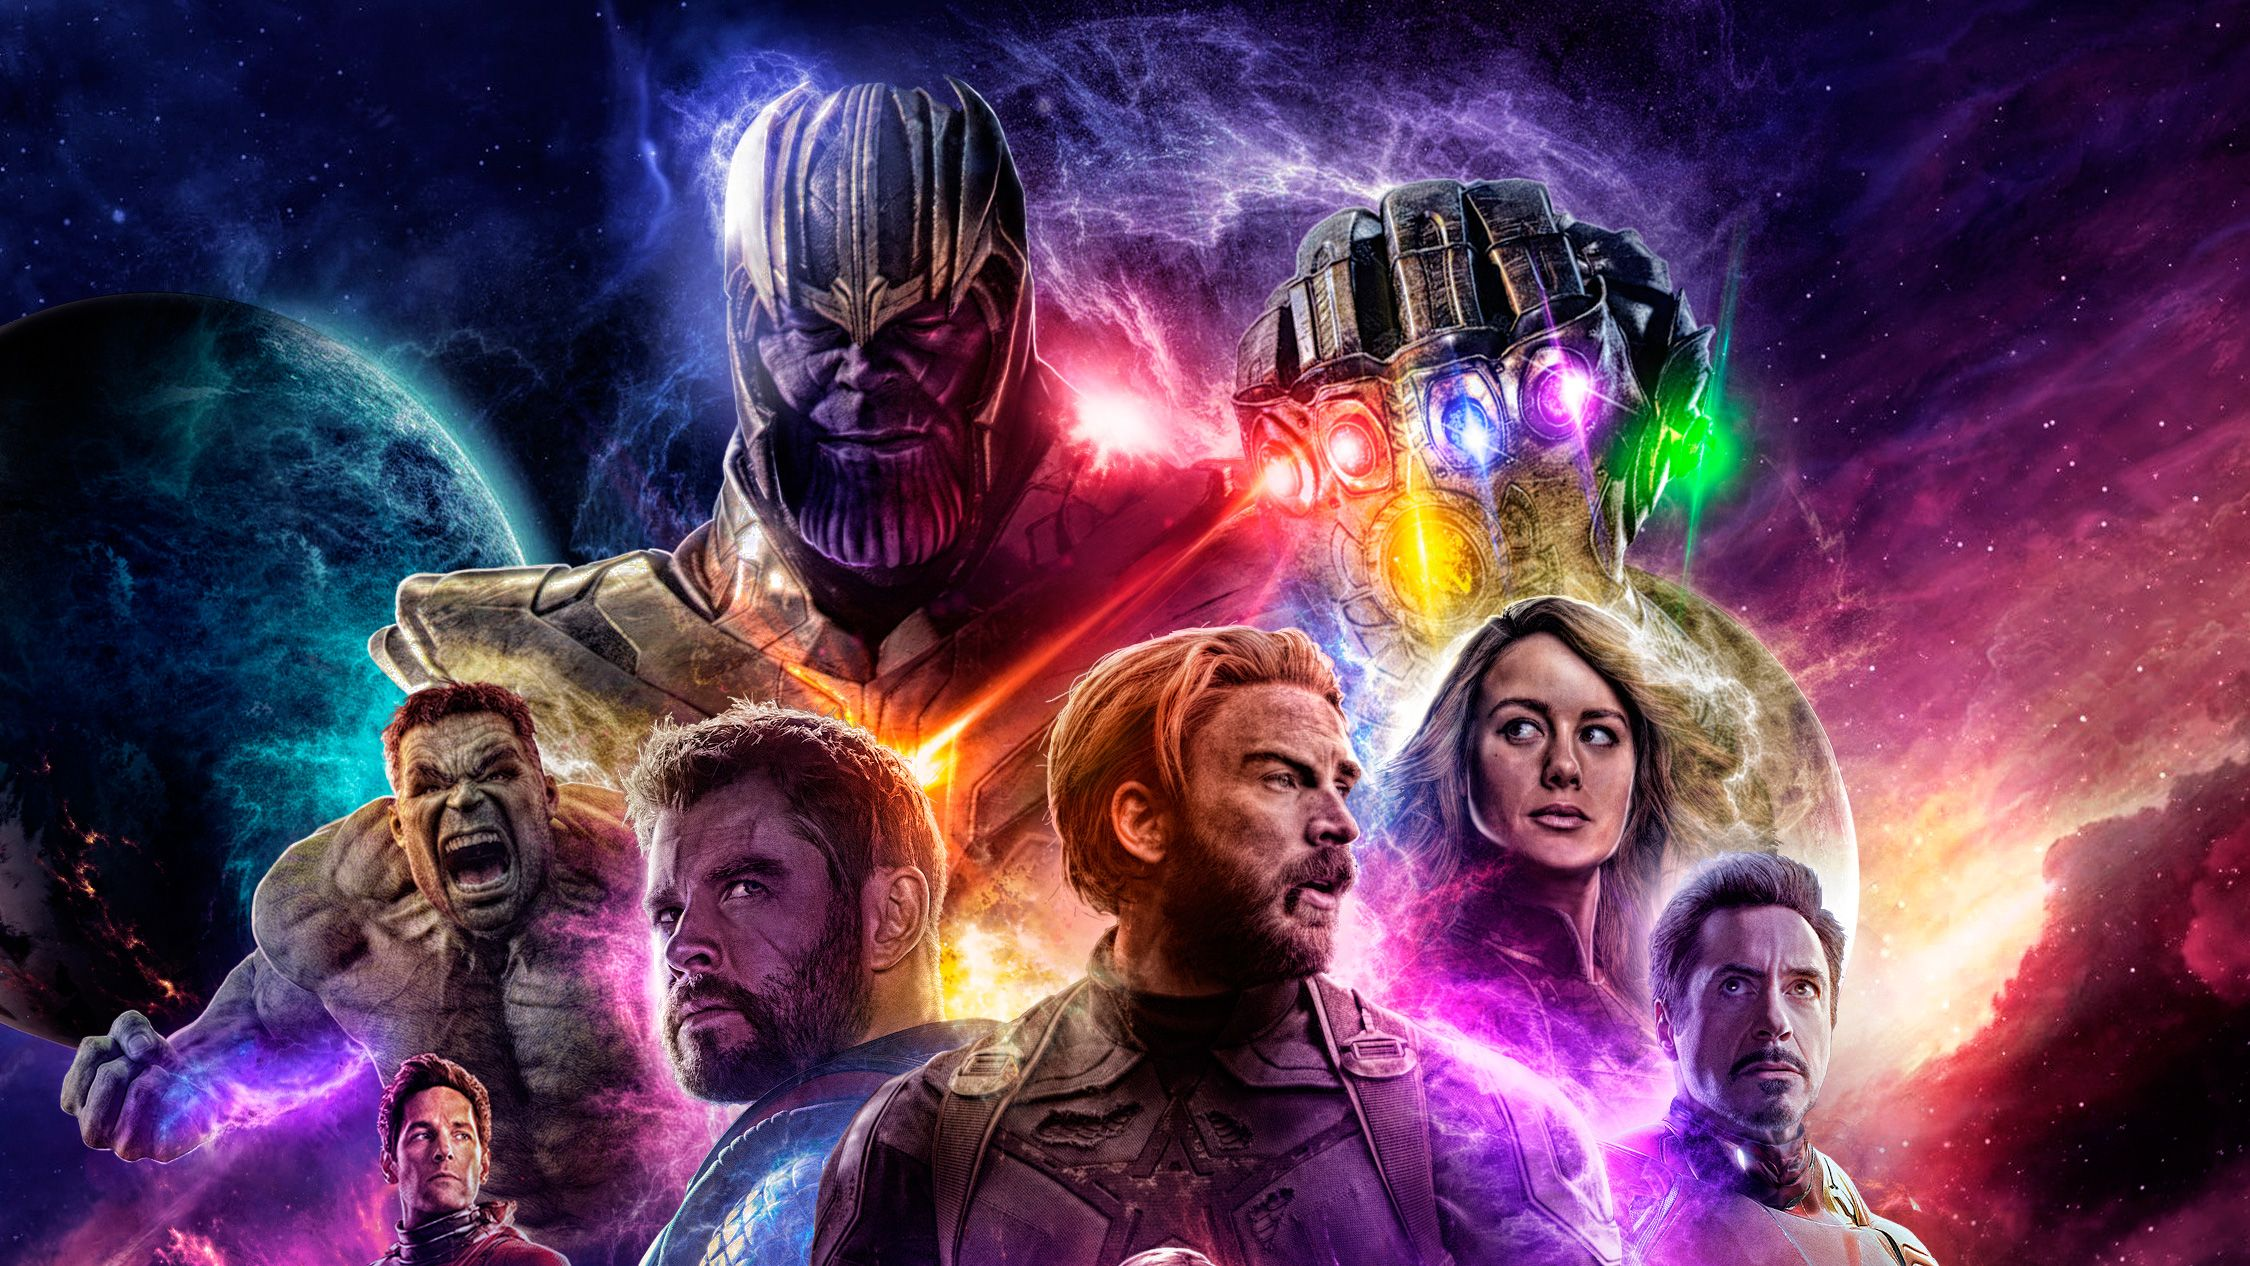 New Wallpapers Avengers Ultra Hd And 4k Wallpapers - Avengers End Game Background , HD Wallpaper & Backgrounds